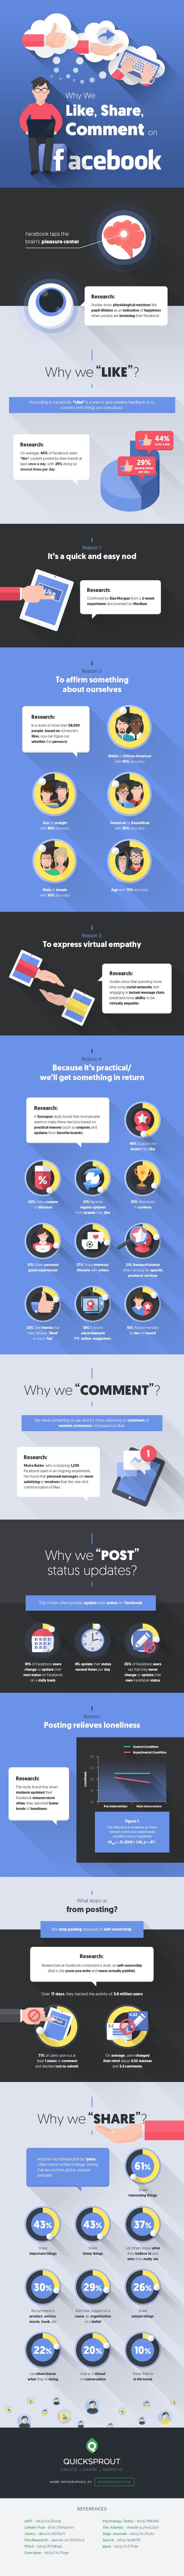 Why We Like, Share, & Comment on Facebook